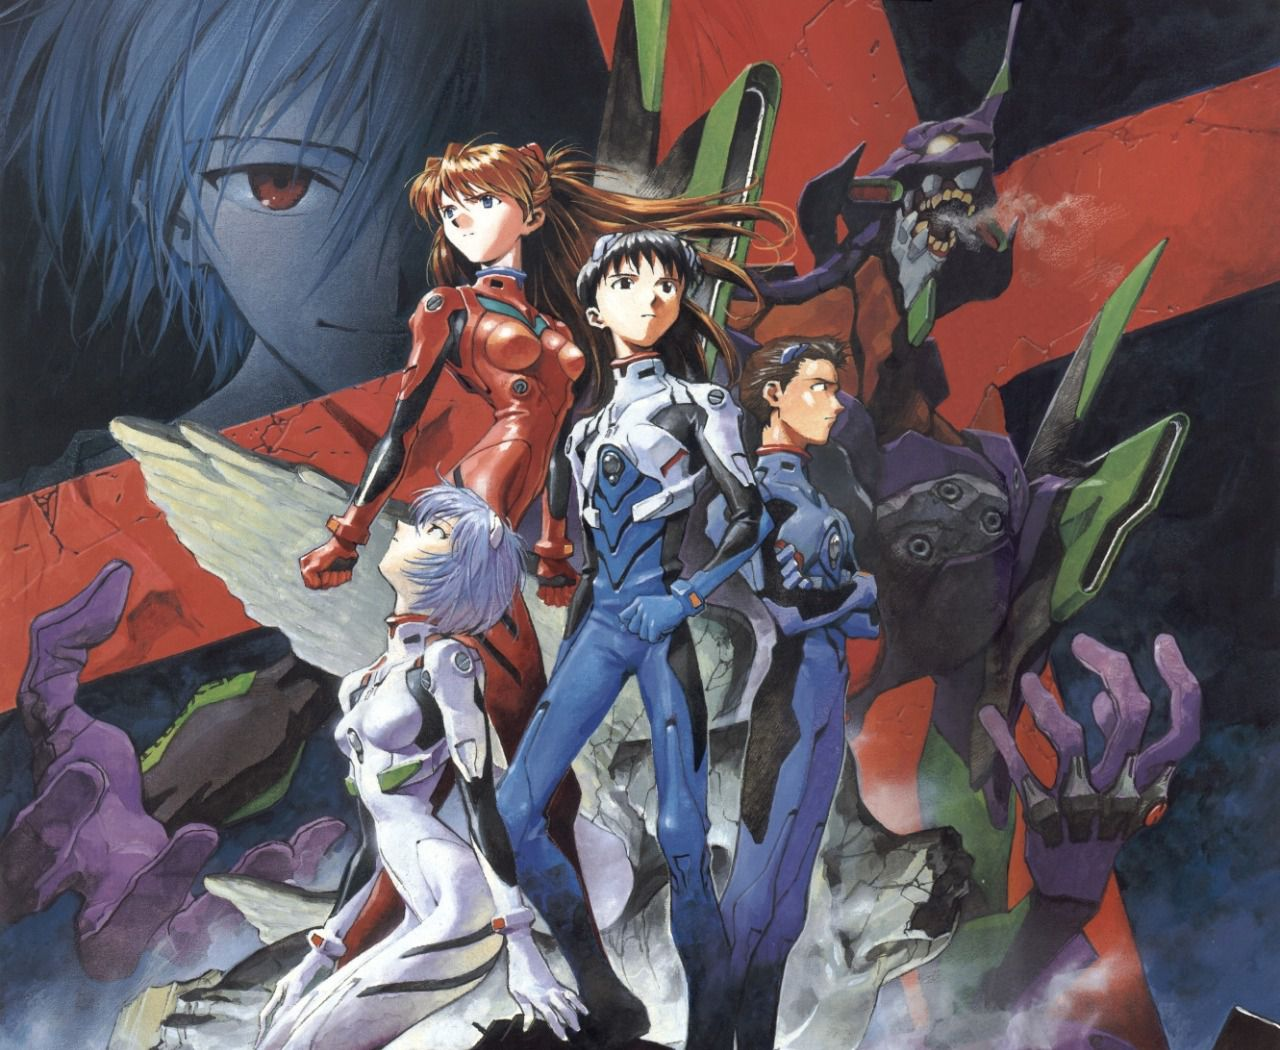 Neon Genesis Evangelion 8 Things To Know About The Legendary Anime Vox